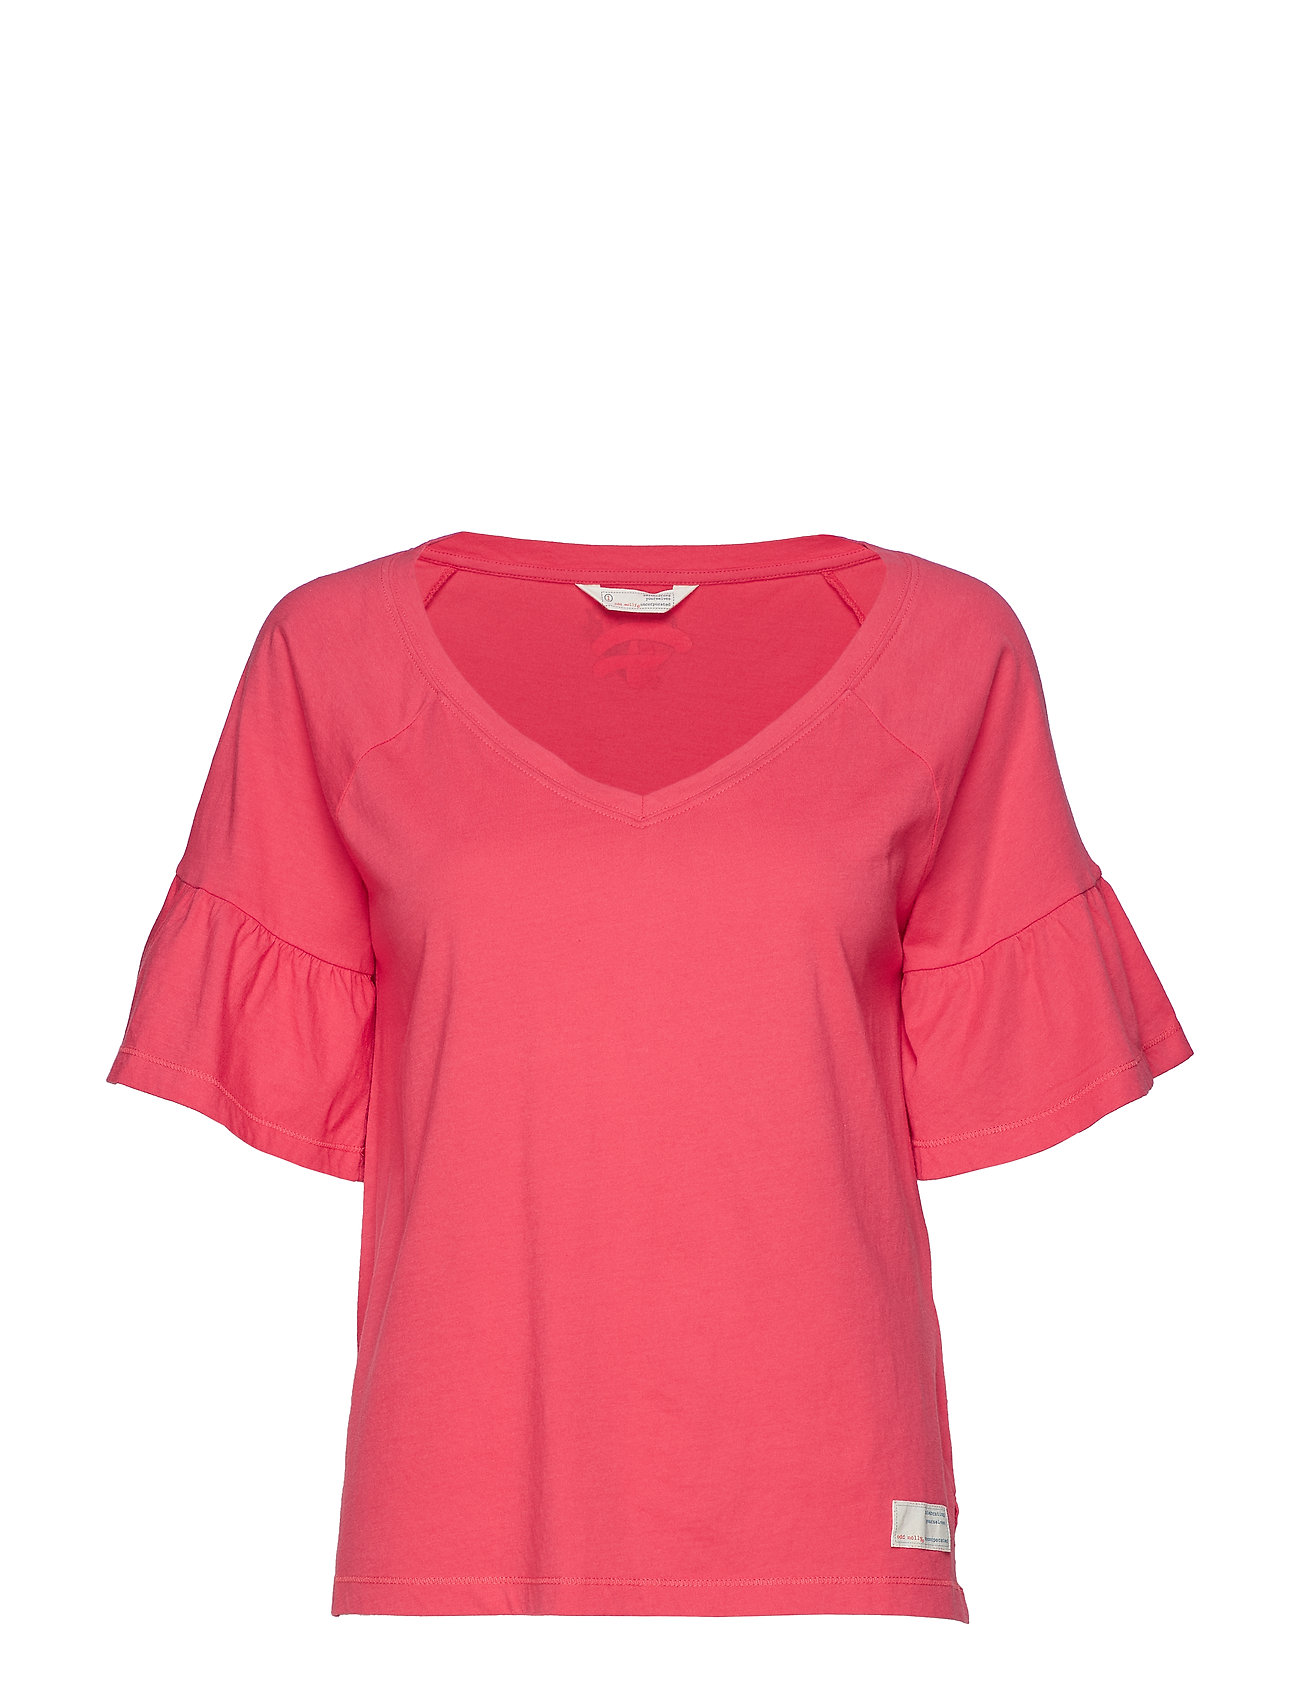 ODD MOLLY howlin s/s top - RED CORAL